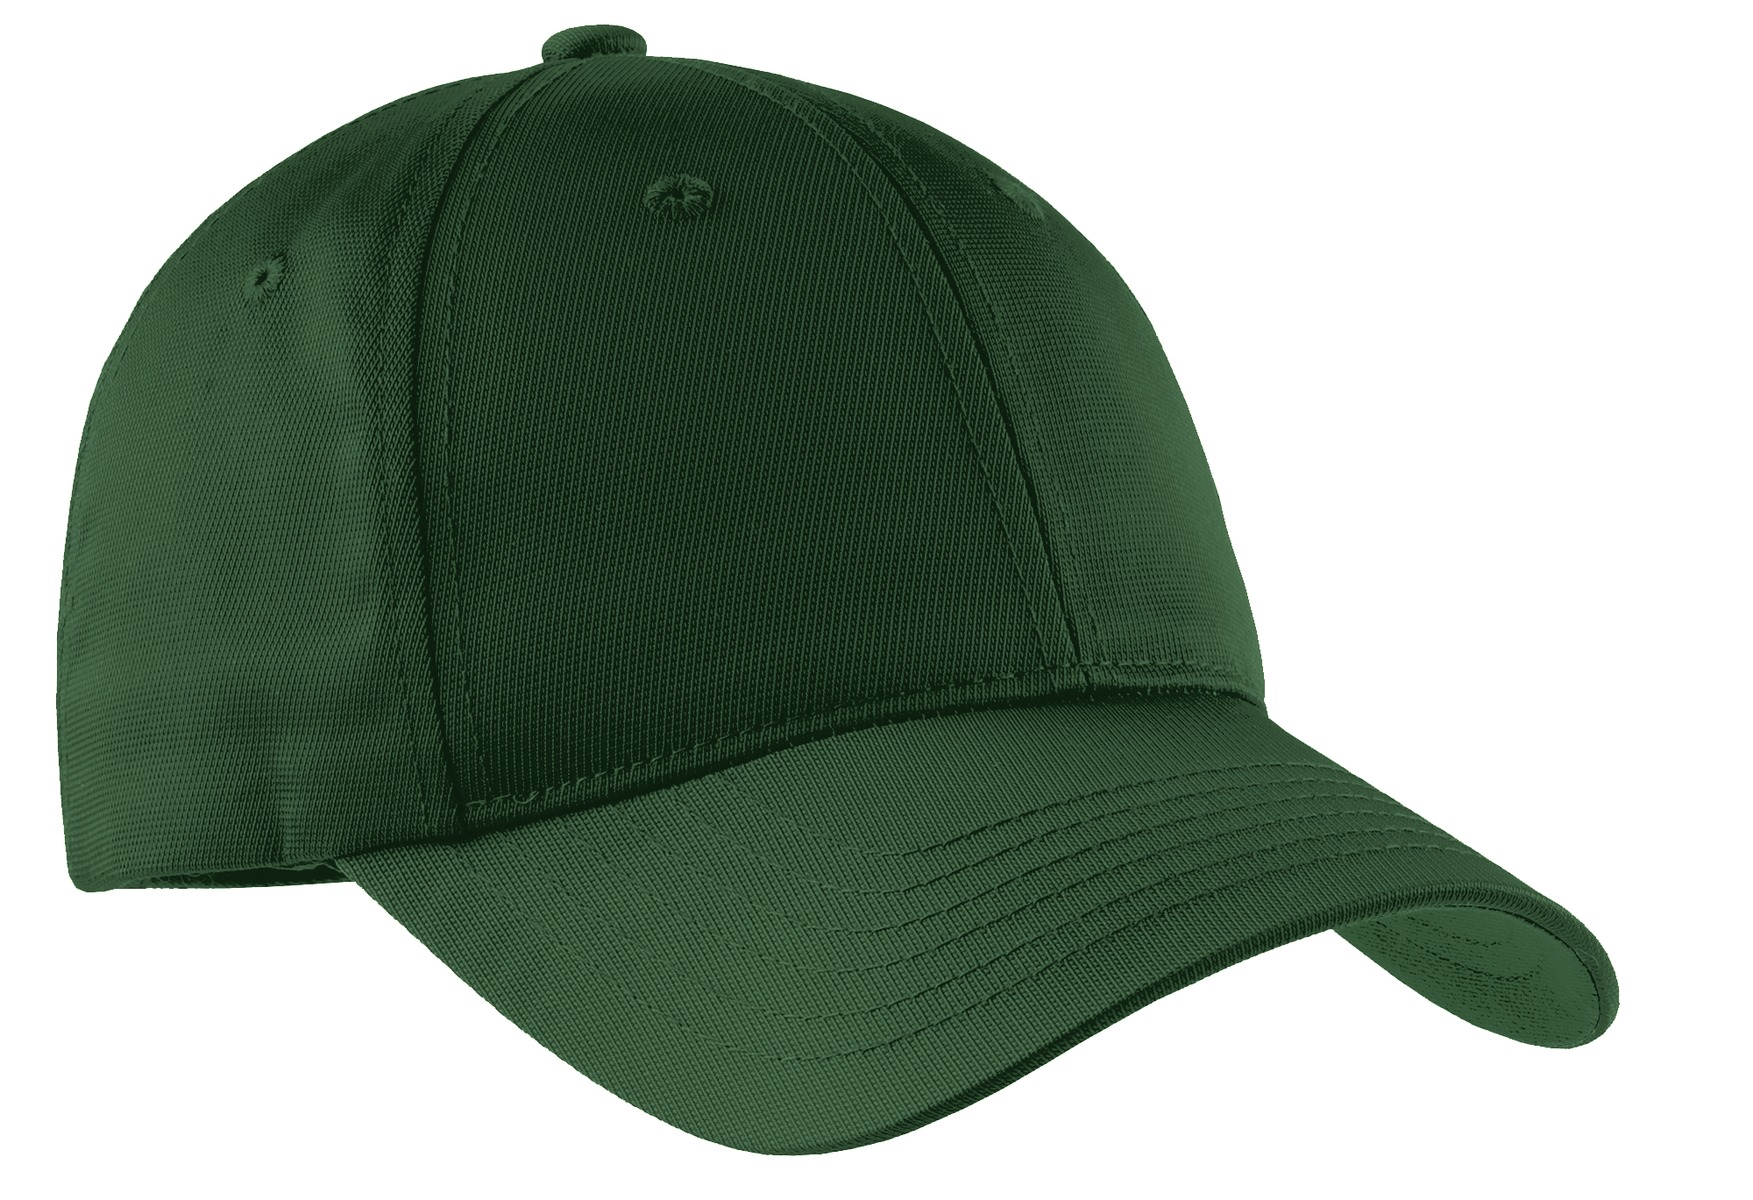 Sport-Tek ®  Dry Zone ®  Nylon Cap. STC10 - Forest Green